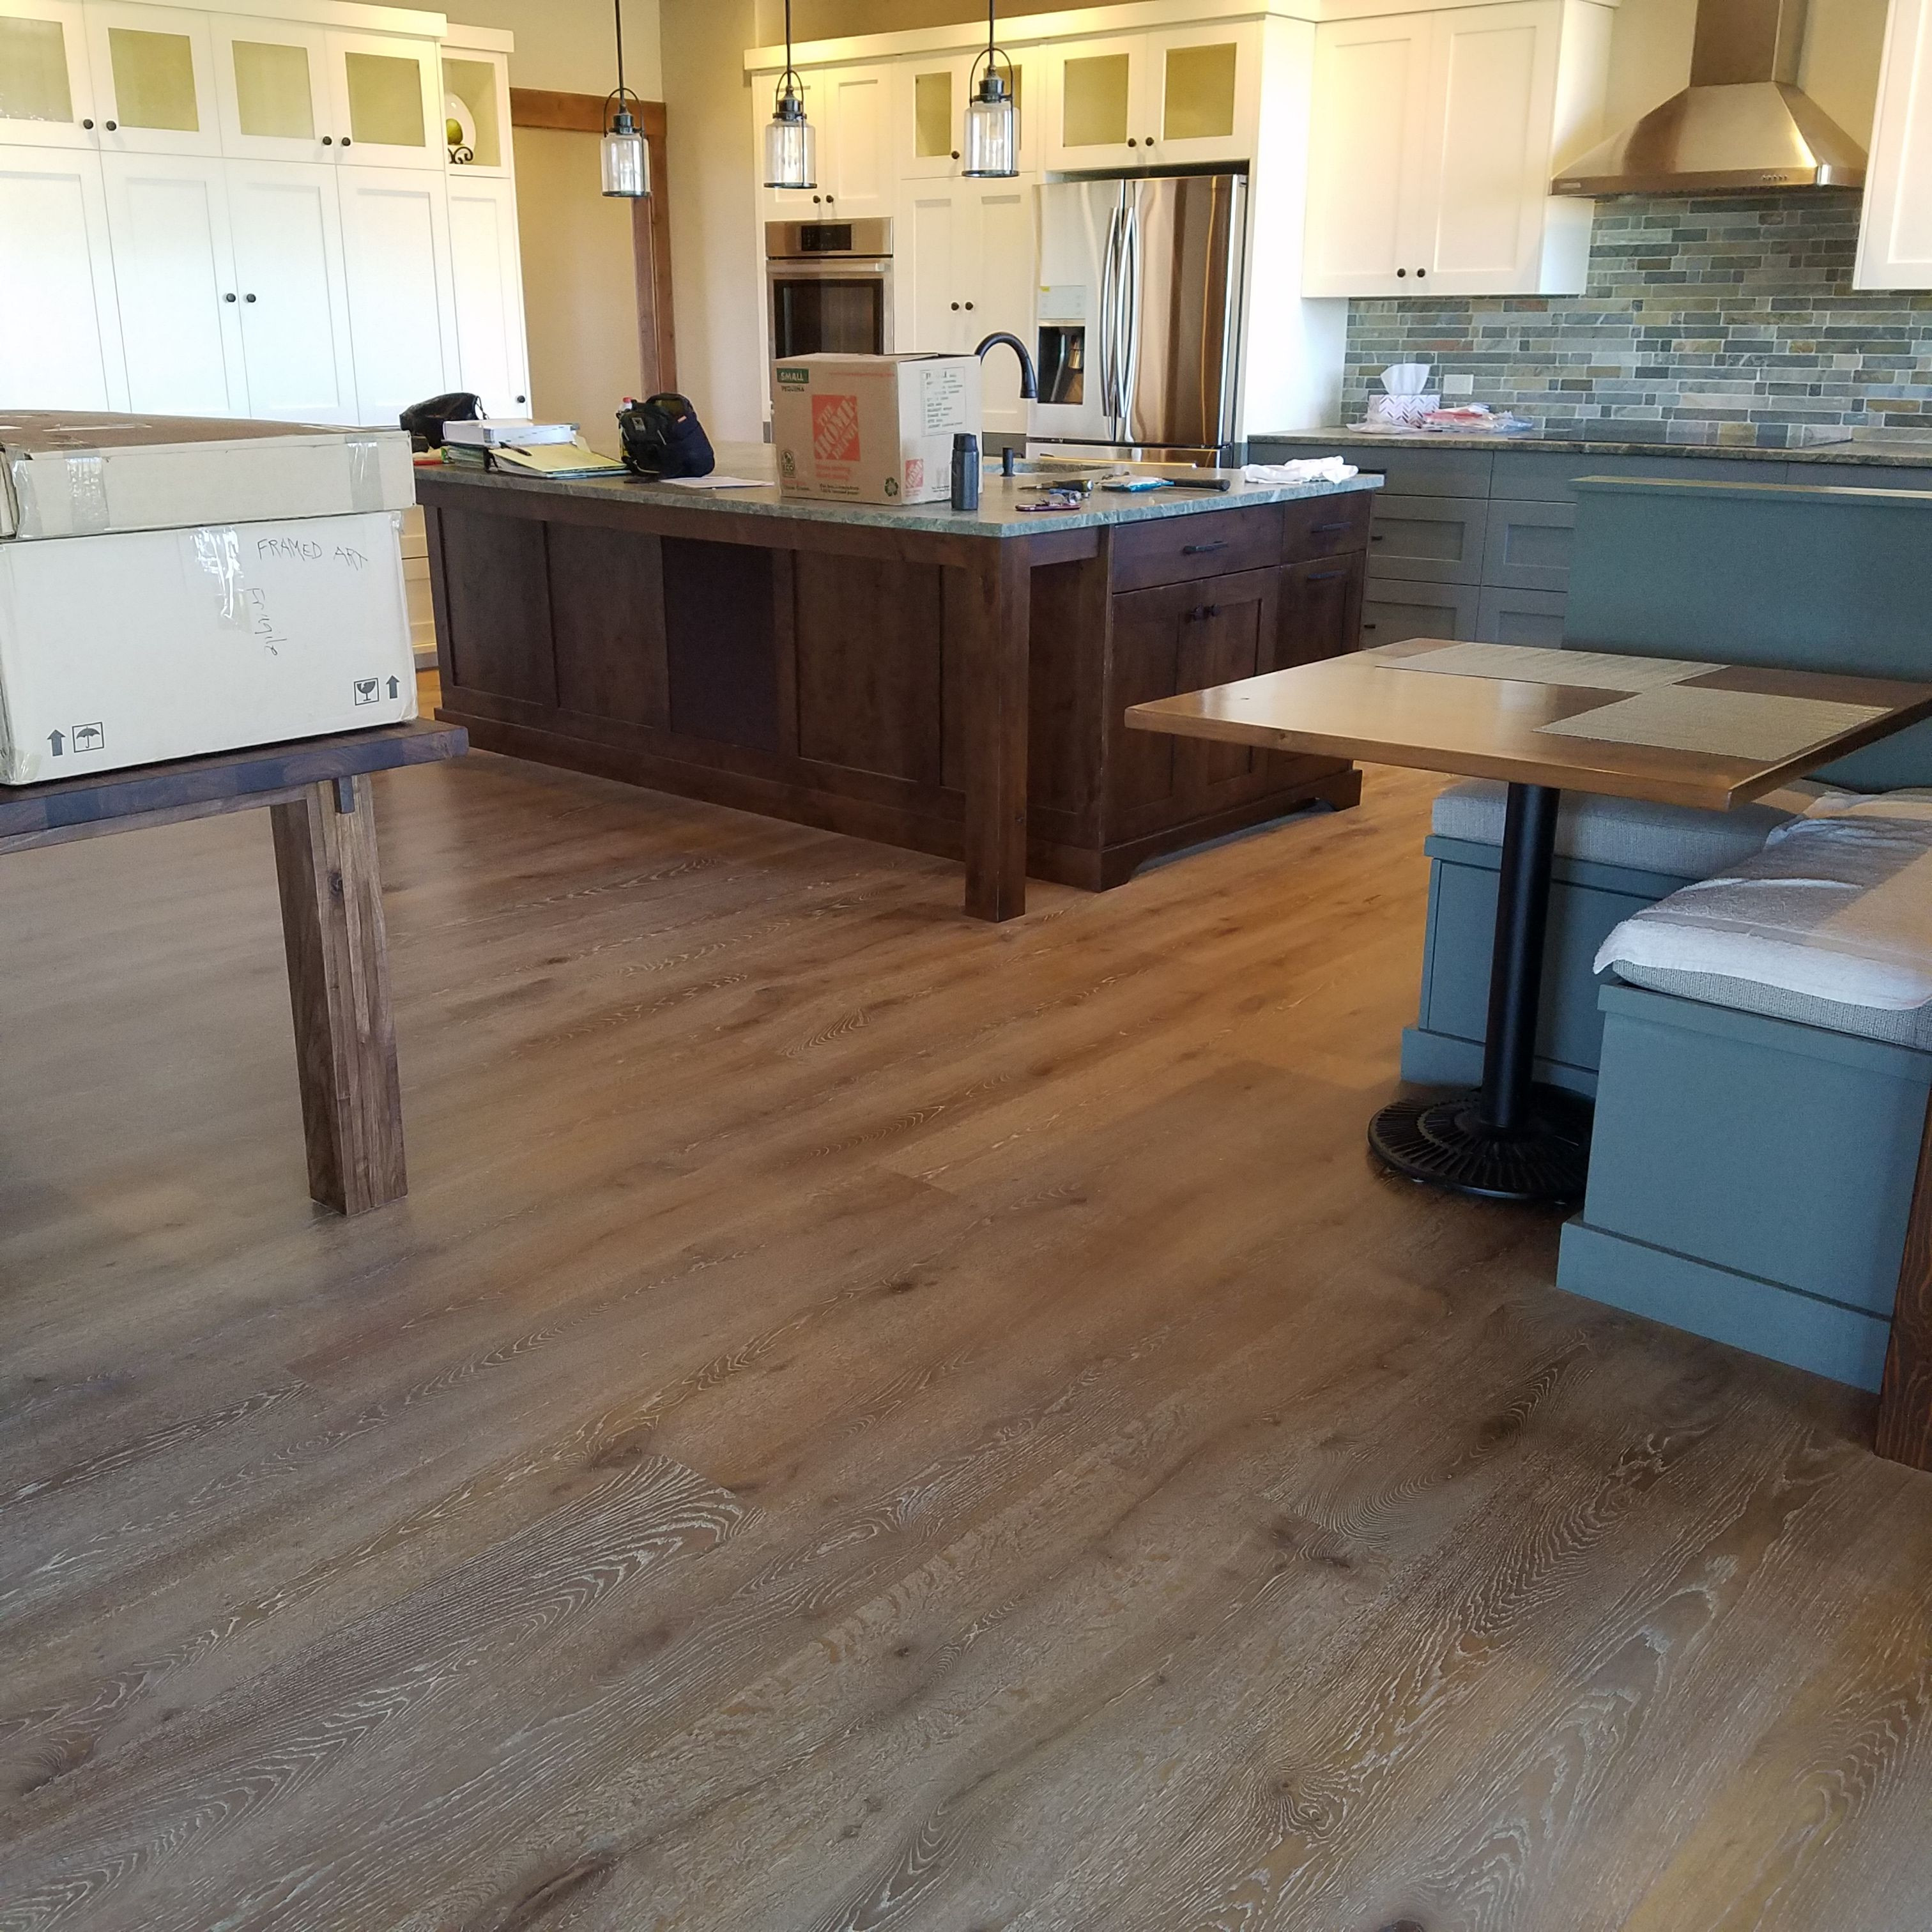 25 Elegant Installing Unfinished Hardwood Floors Yourself 2021 free download installing unfinished hardwood floors yourself of castlebespokeflooring looking great 3 4 x 8 x 10 with 6mm wear pertaining to castlebespokeflooring looking great 3 4 x 8 x 10 with 6mm wear